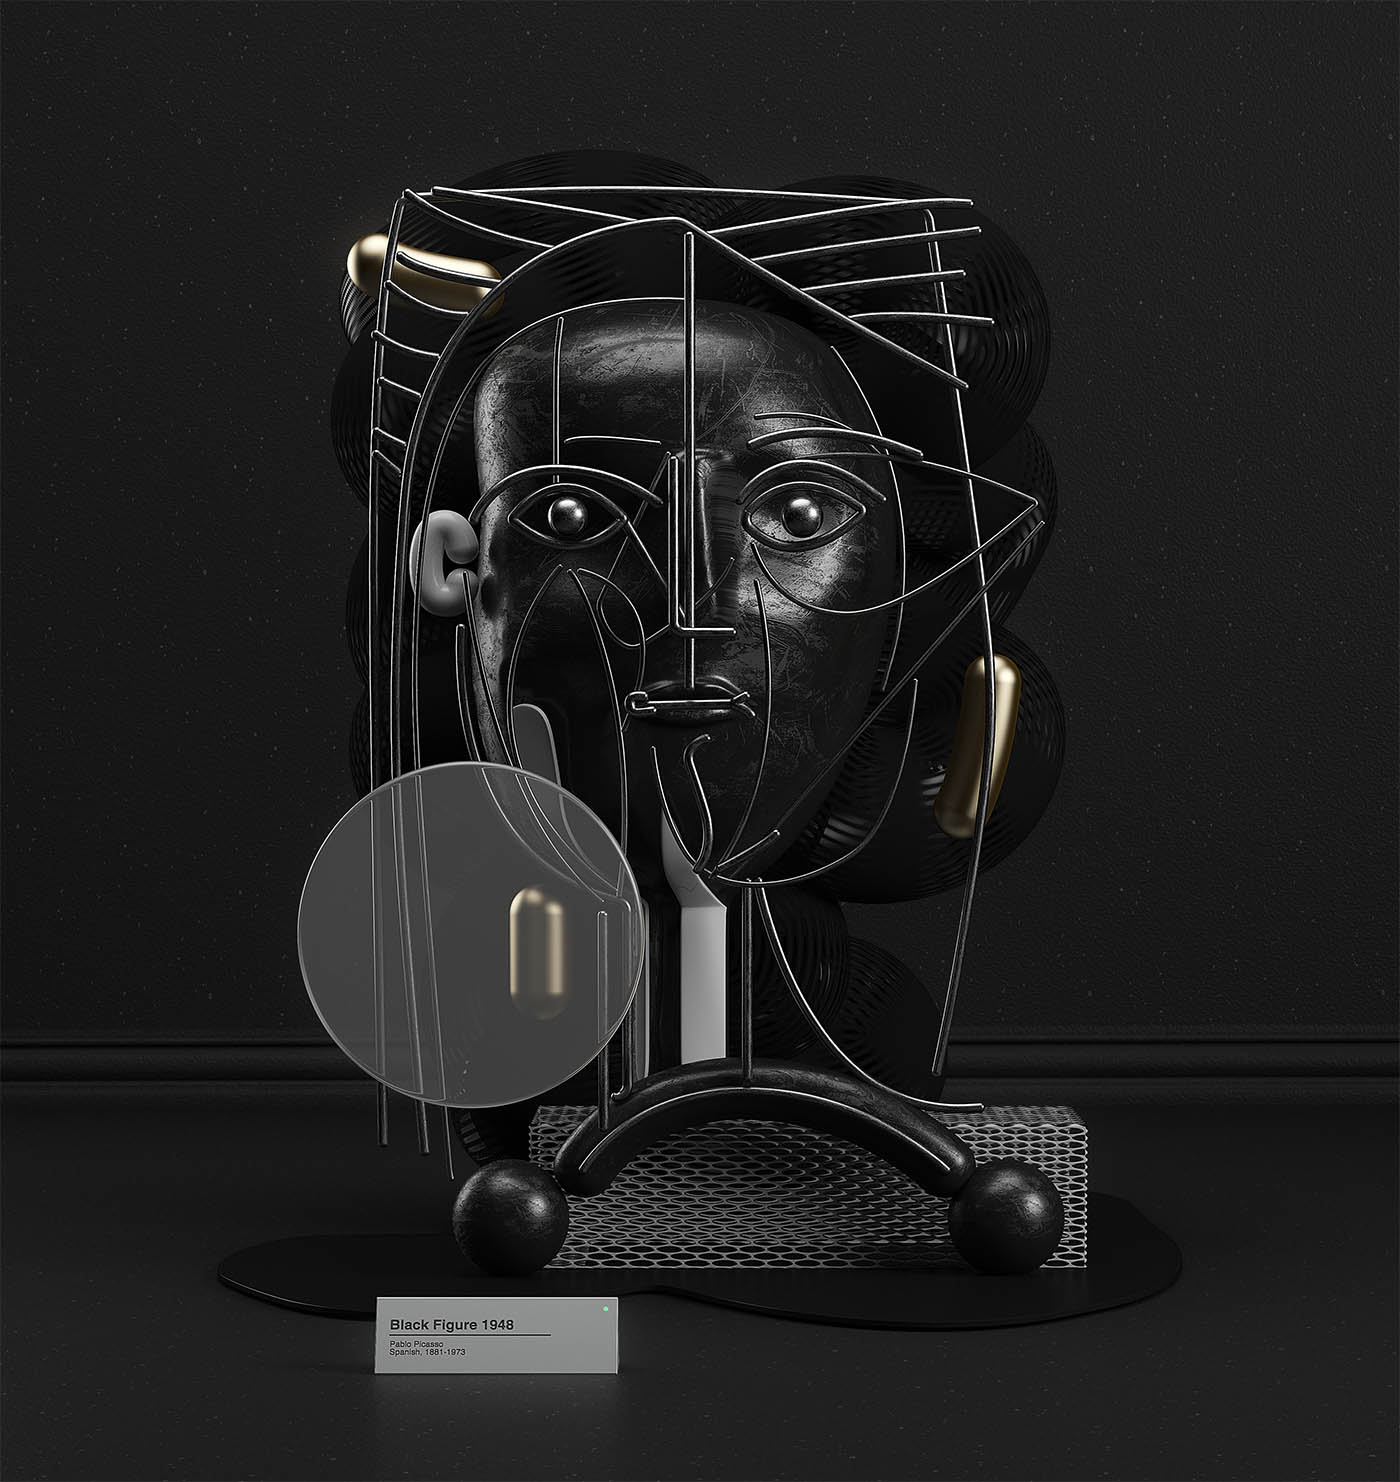 picasso painting 3d model black figure